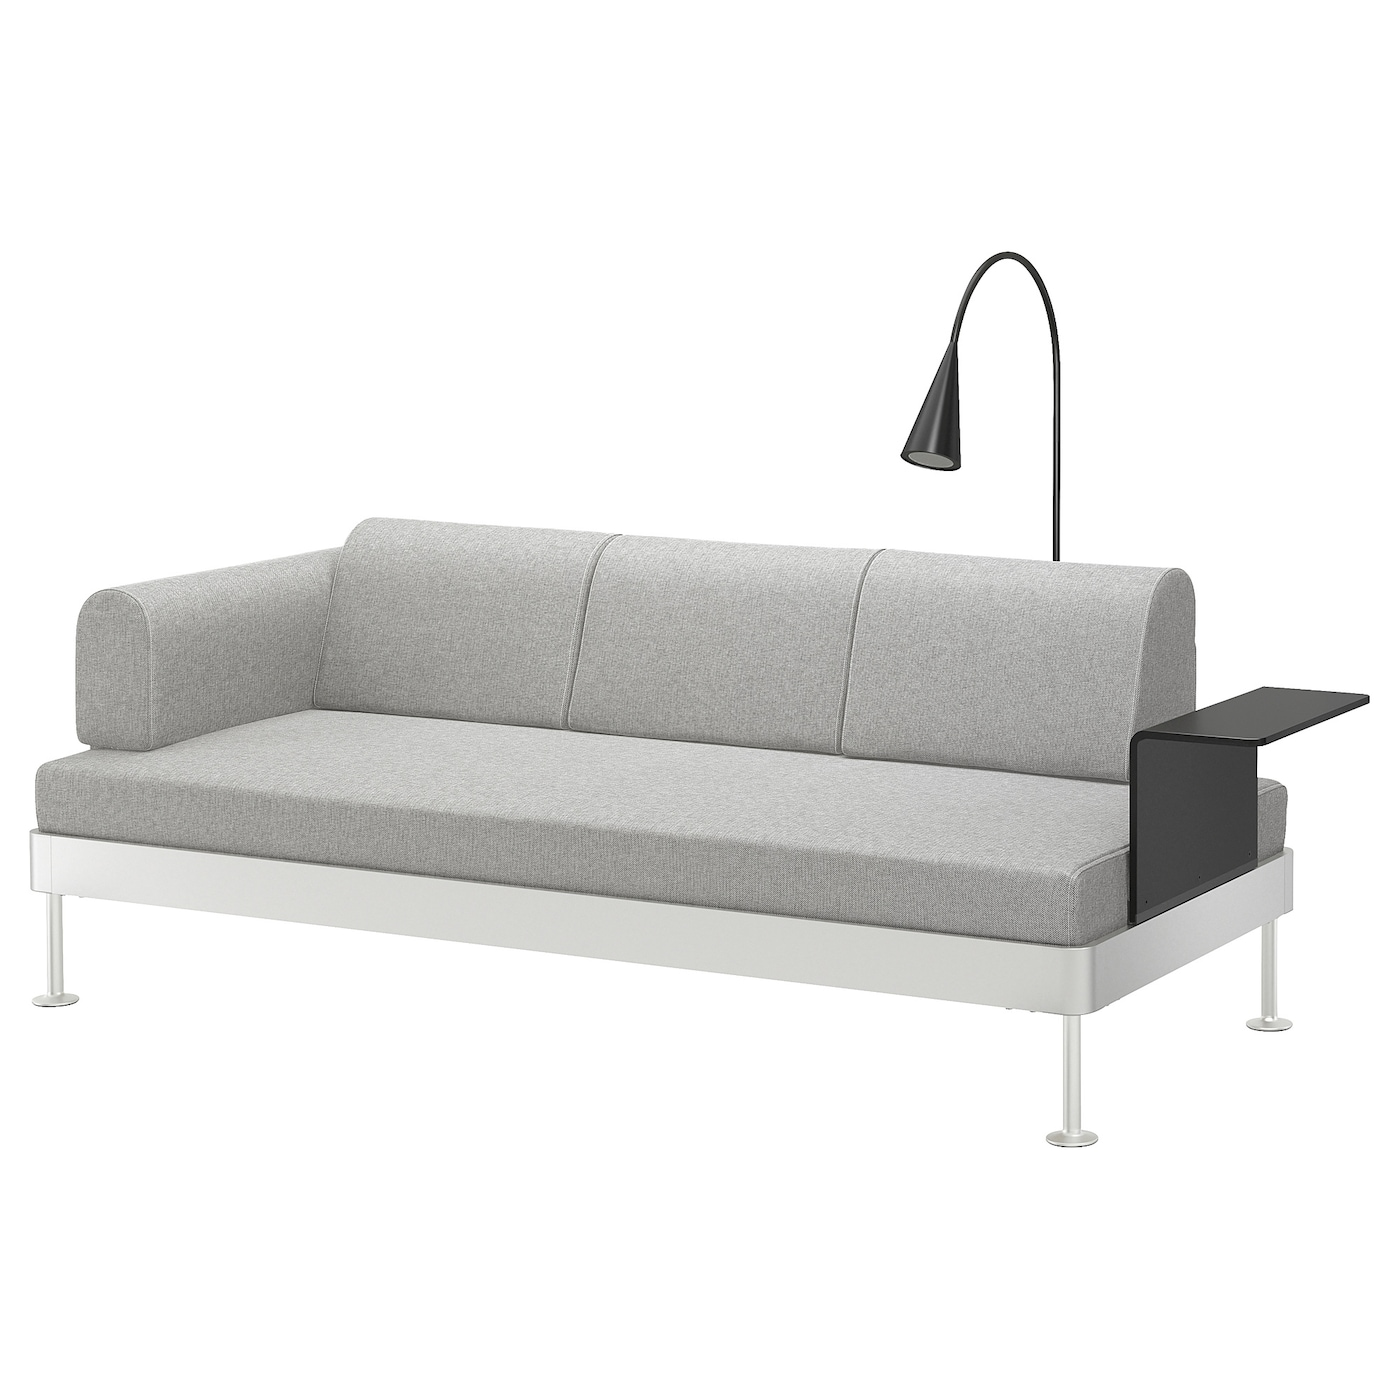 delaktig 3 seat sofa w side table and lamp tallmyra white. Black Bedroom Furniture Sets. Home Design Ideas